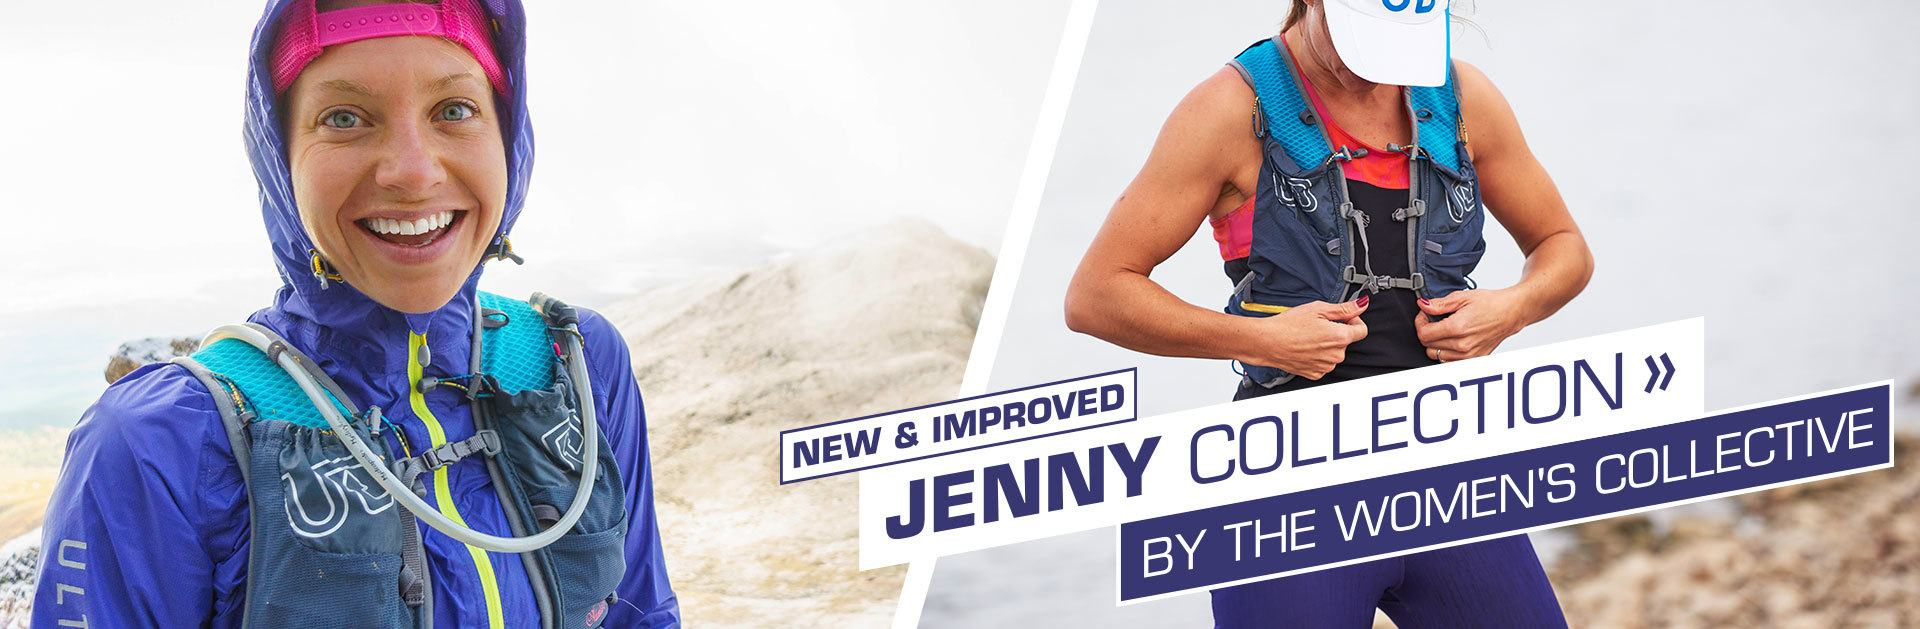 The New & Improved Jenny Collection Is Now Here!